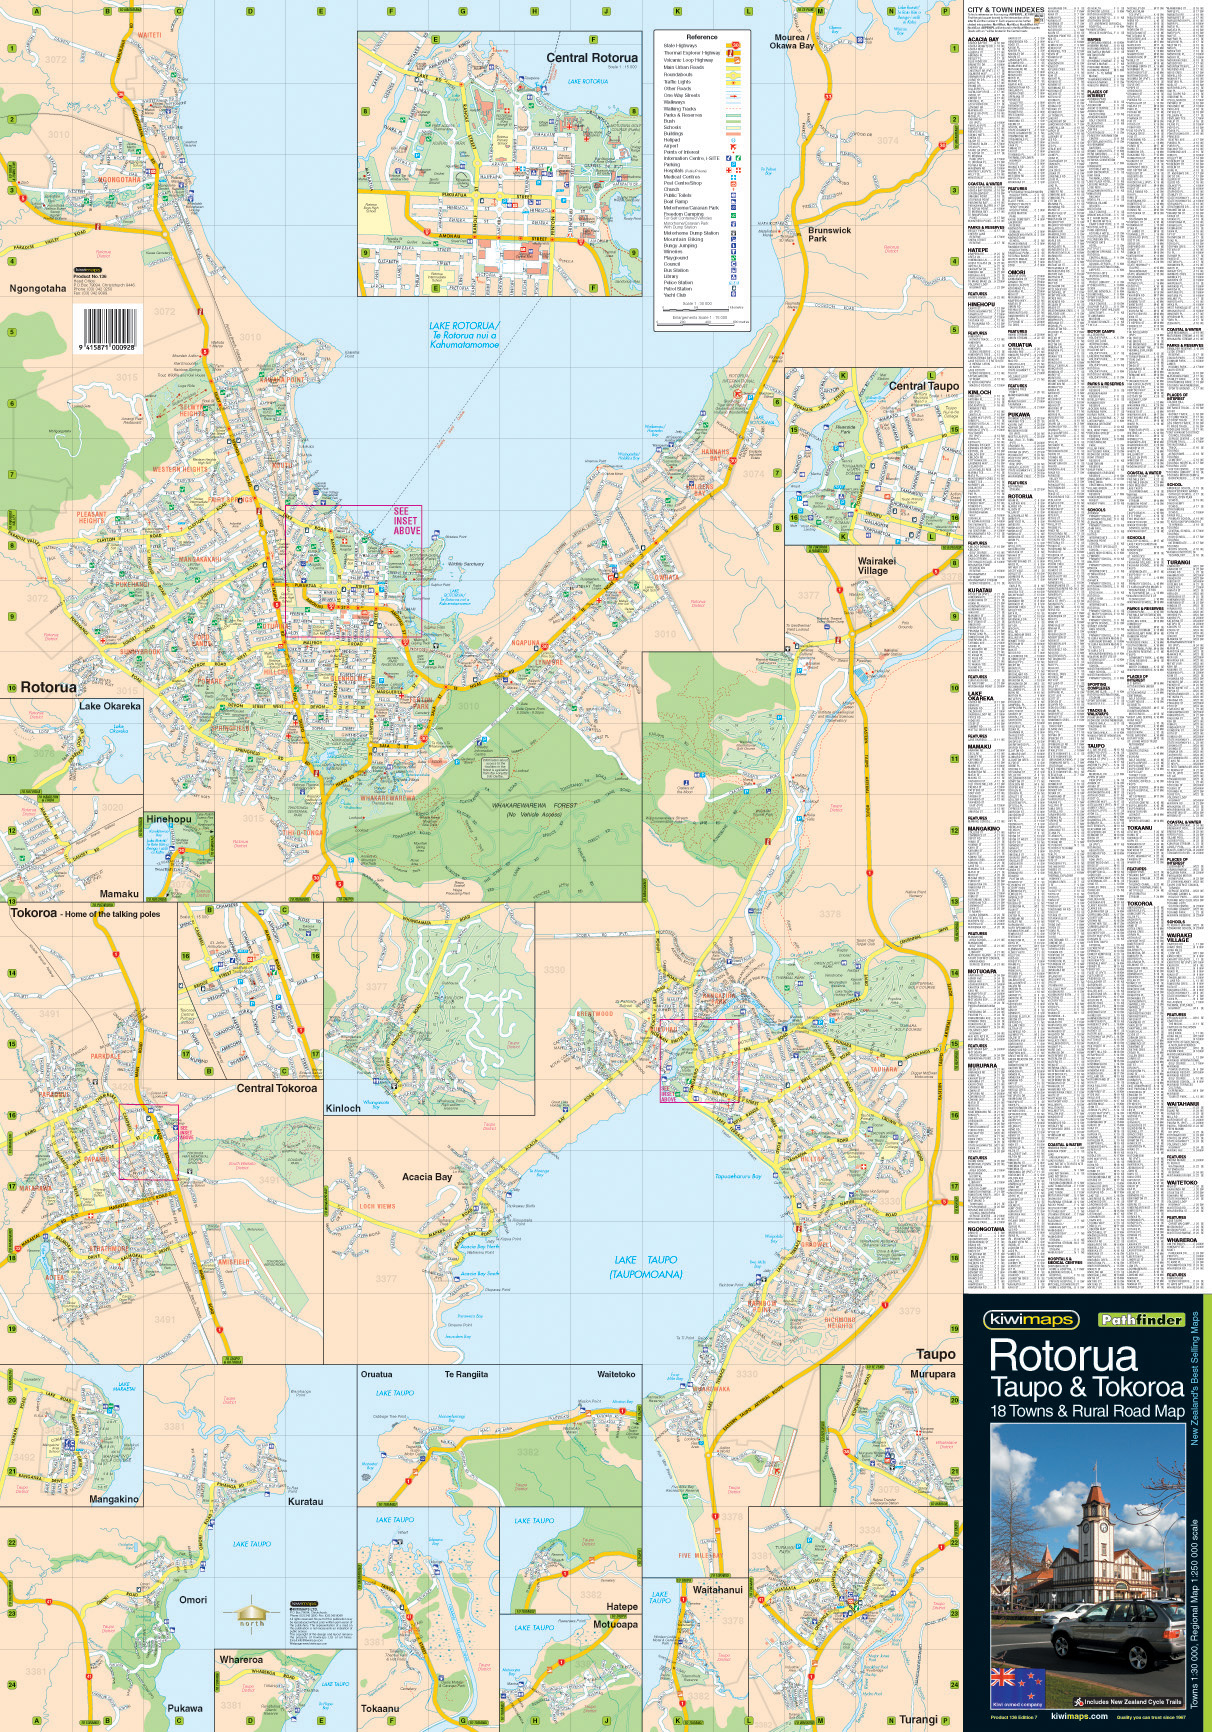 Rotorua New Zealand Map.Rotorua Taupo District Road Map